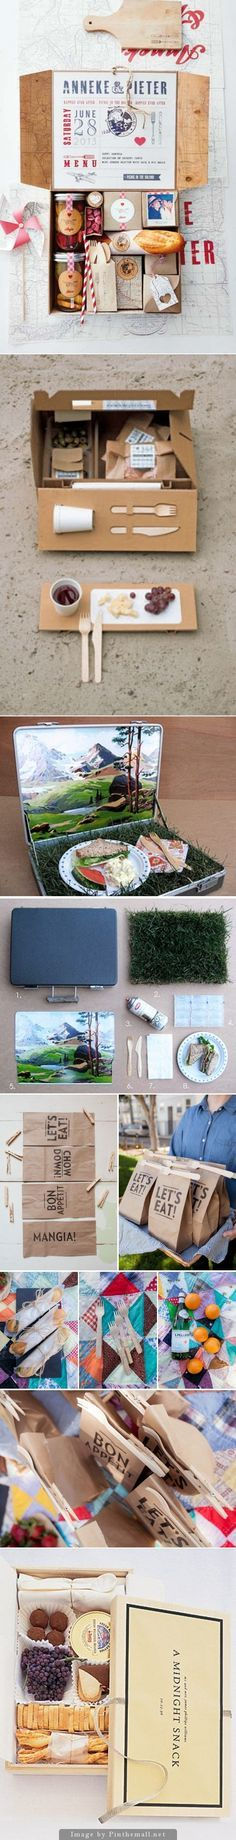 lets go on a #picnic #packaging curated via Packaging Diva PD - created via http://pinterest.com/packagingdiva?utm_content=buffer5b041&utm_medium=social&utm_source=pinterest.com&utm_campaign=buffer